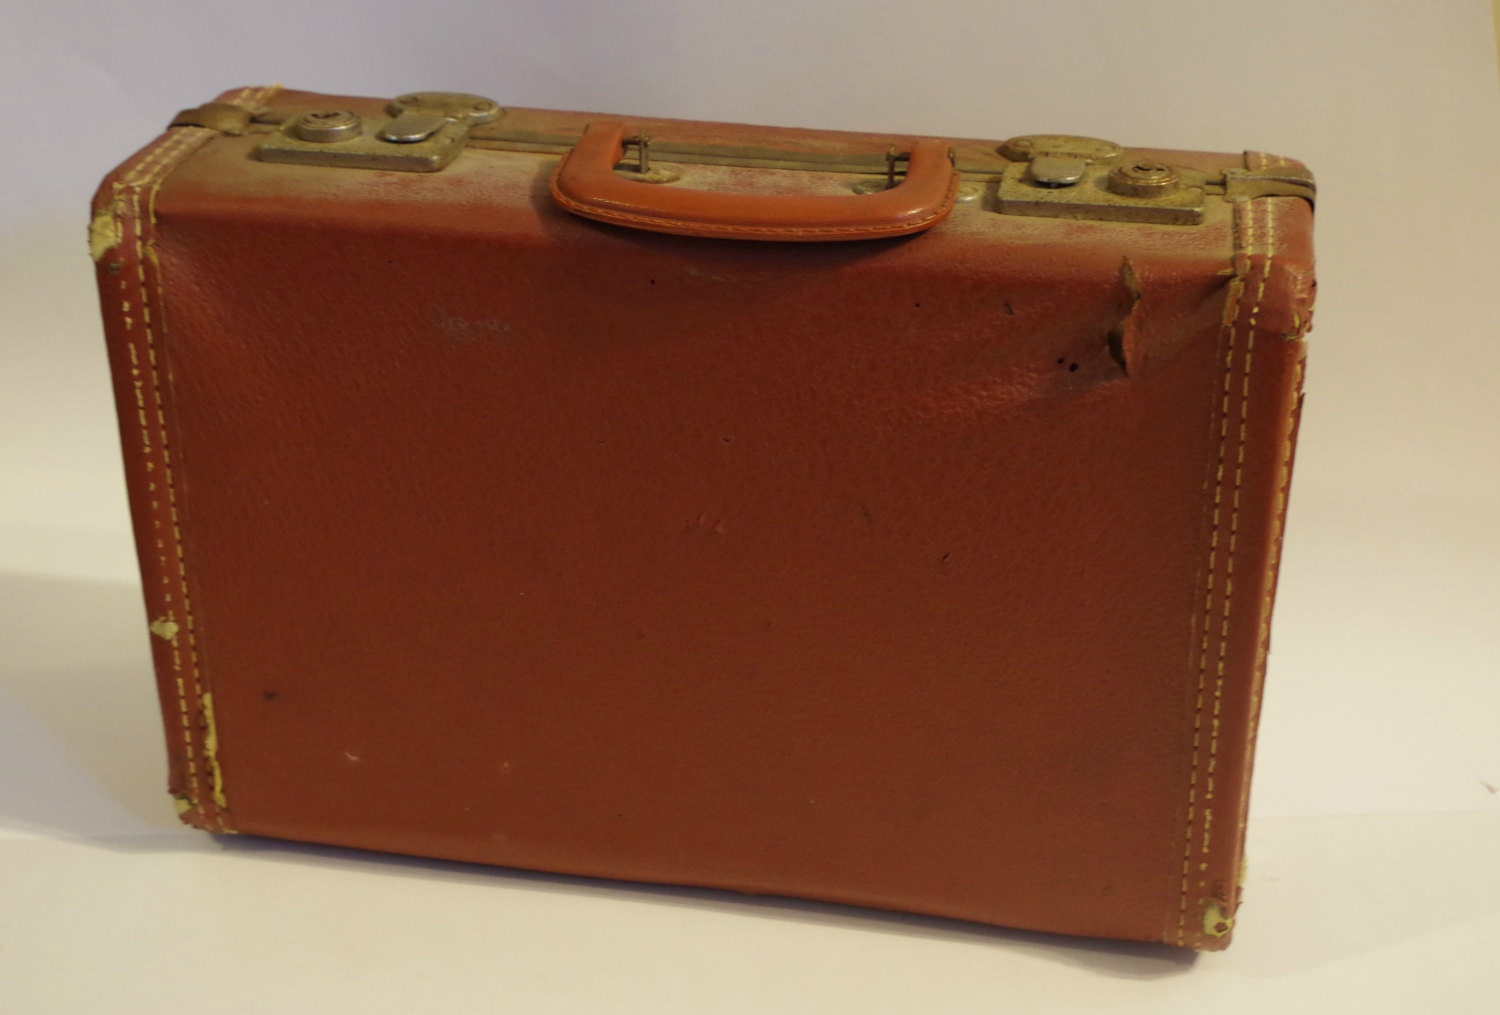 Vintage suitcase small brown suitcase by simpletreasury for The vintage suitcase